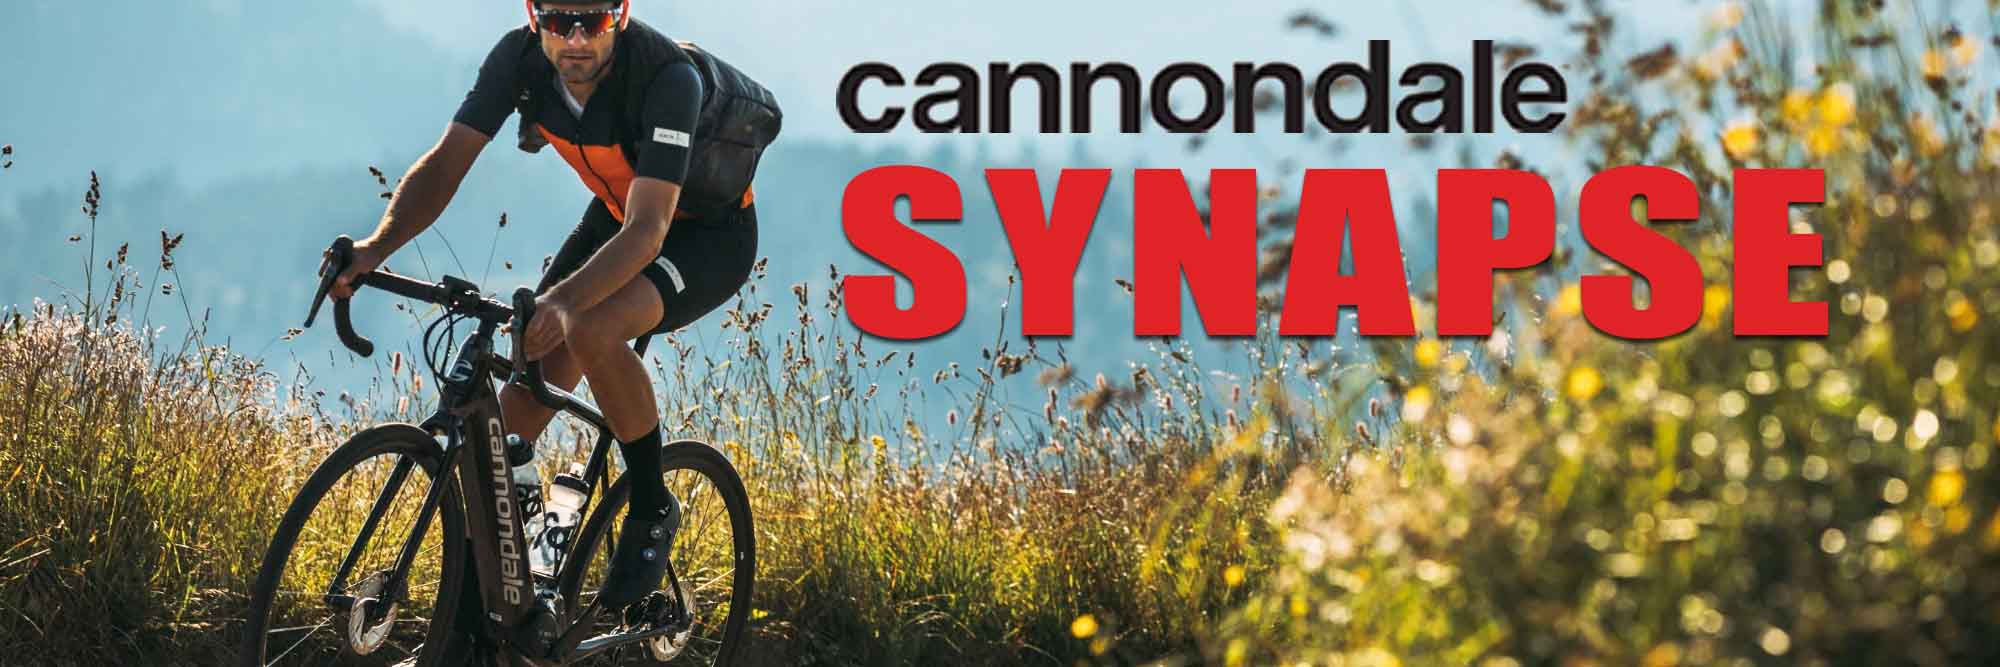 The Cannondale Synapse